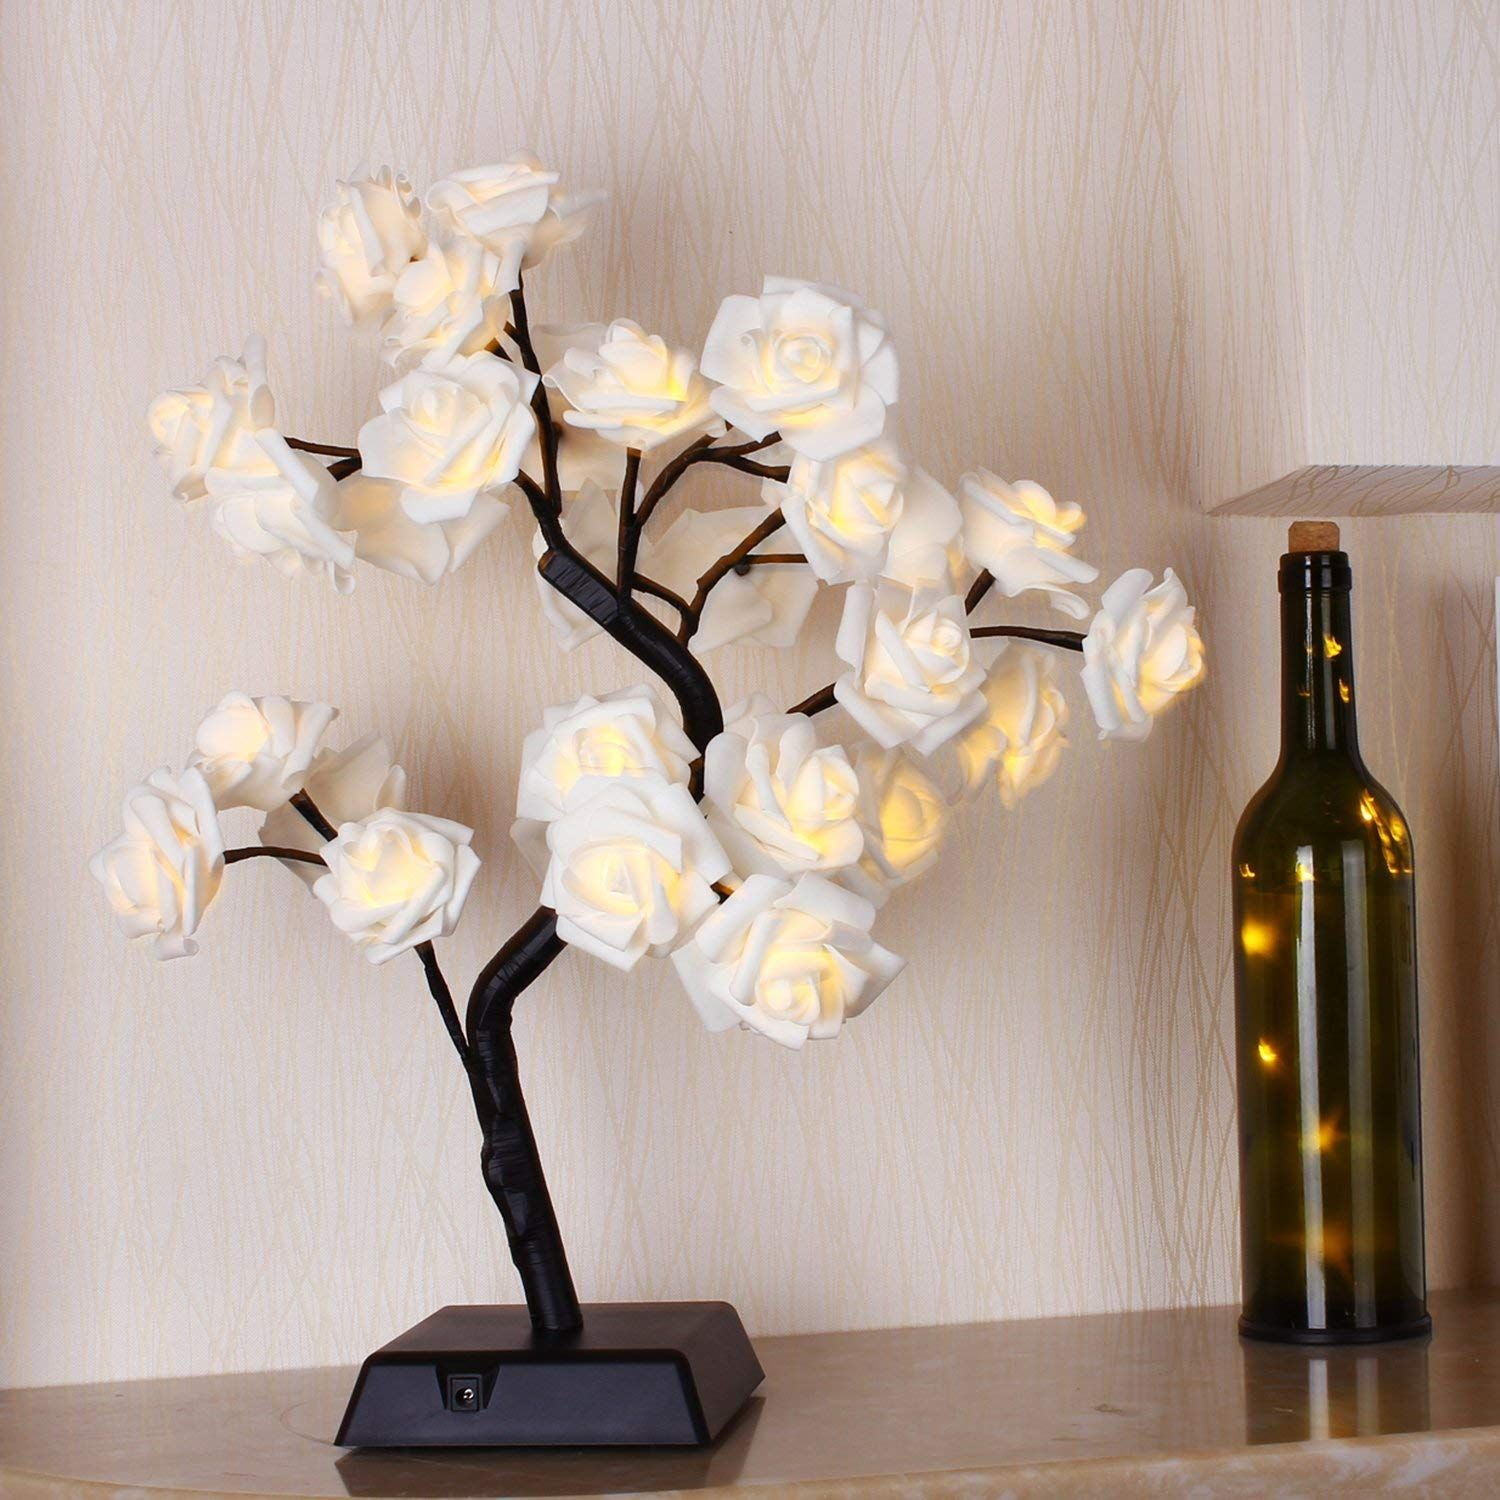 Bolylight Rose Flower Lamp Night Light Centerpiece Table Lamp 17 71 Inch 32l Home Decor For Valentine S Day Par Lighted Centerpieces Flower Lamp Led Table Lamp